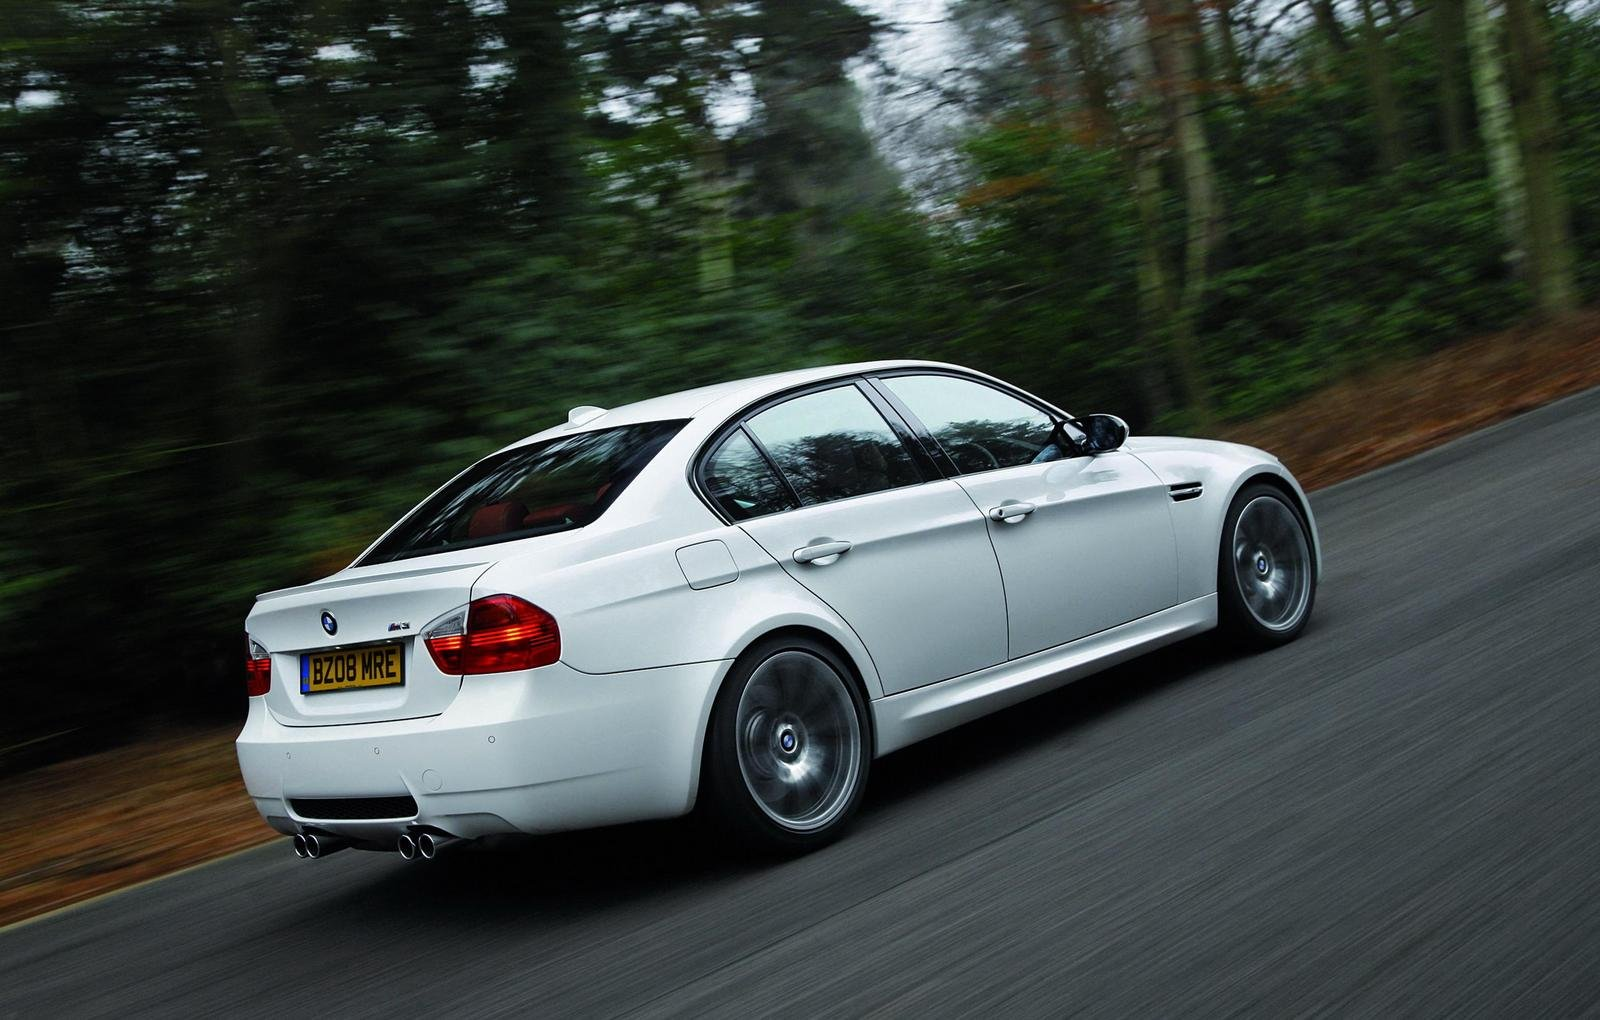 2008 bmw m3 sedan picture 237691 car review top speed. Black Bedroom Furniture Sets. Home Design Ideas